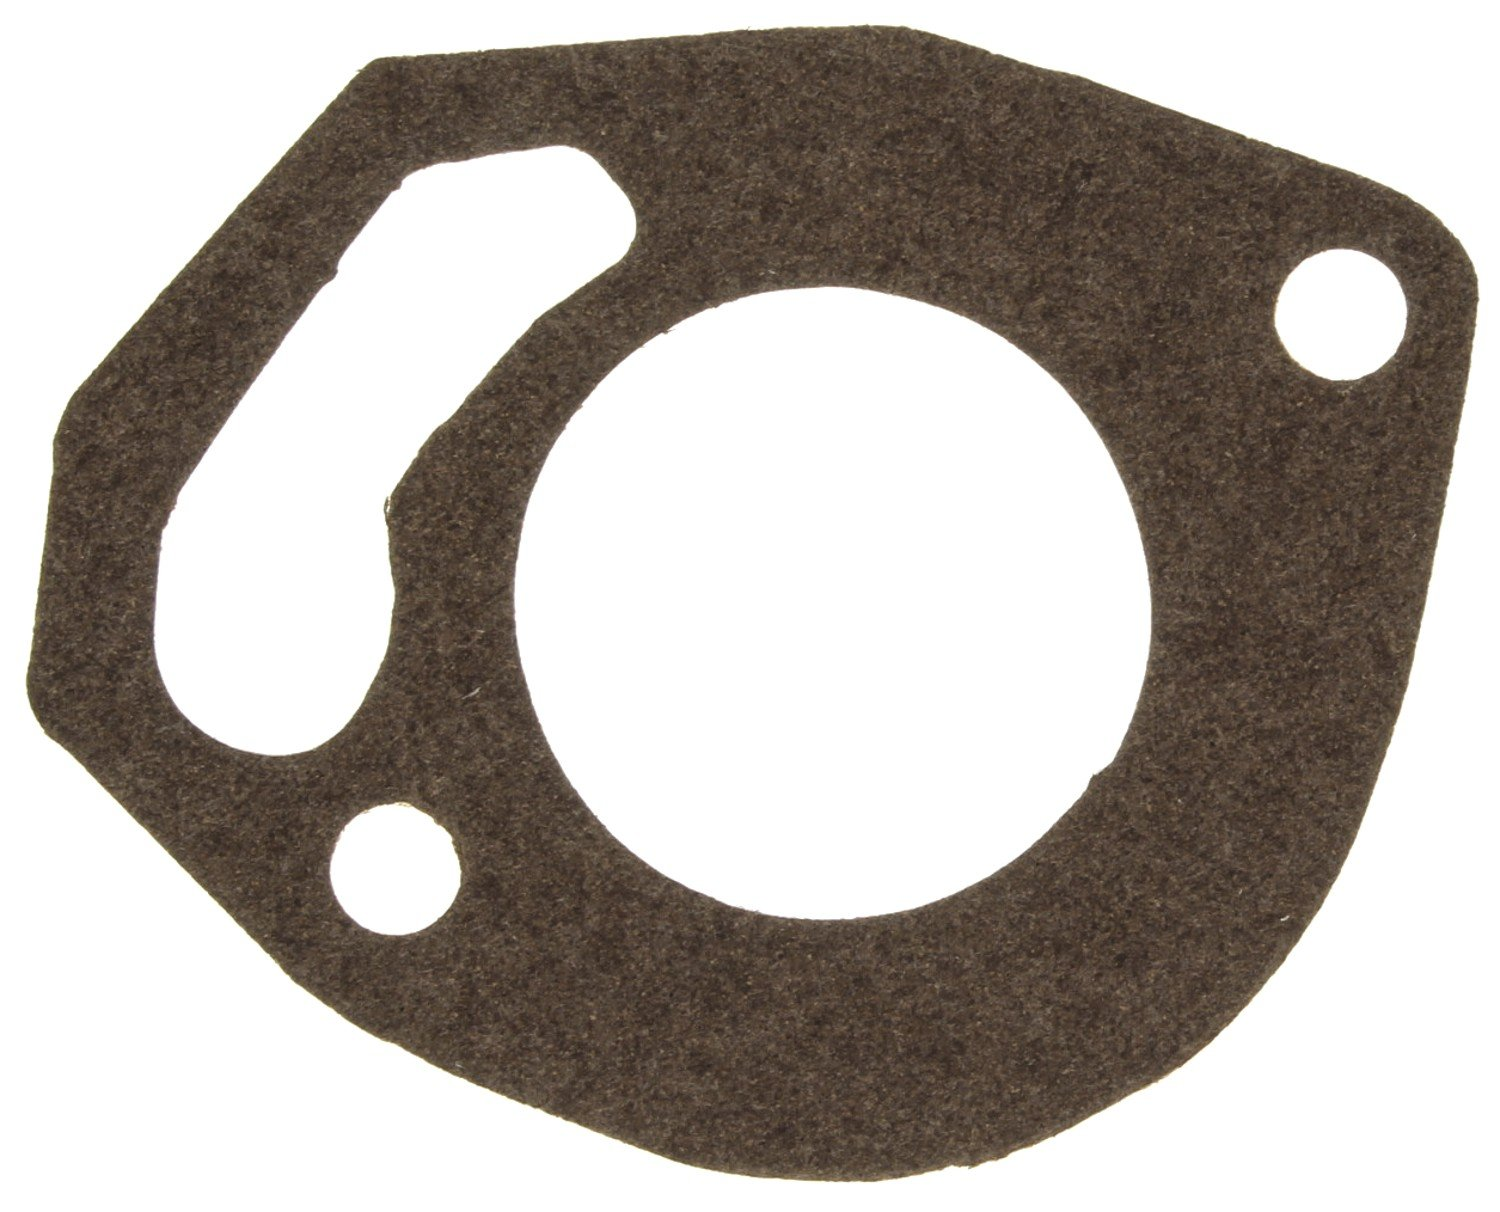 1985 Jeep Cherokee Engine Coolant Outlet Gasket Vg C24003